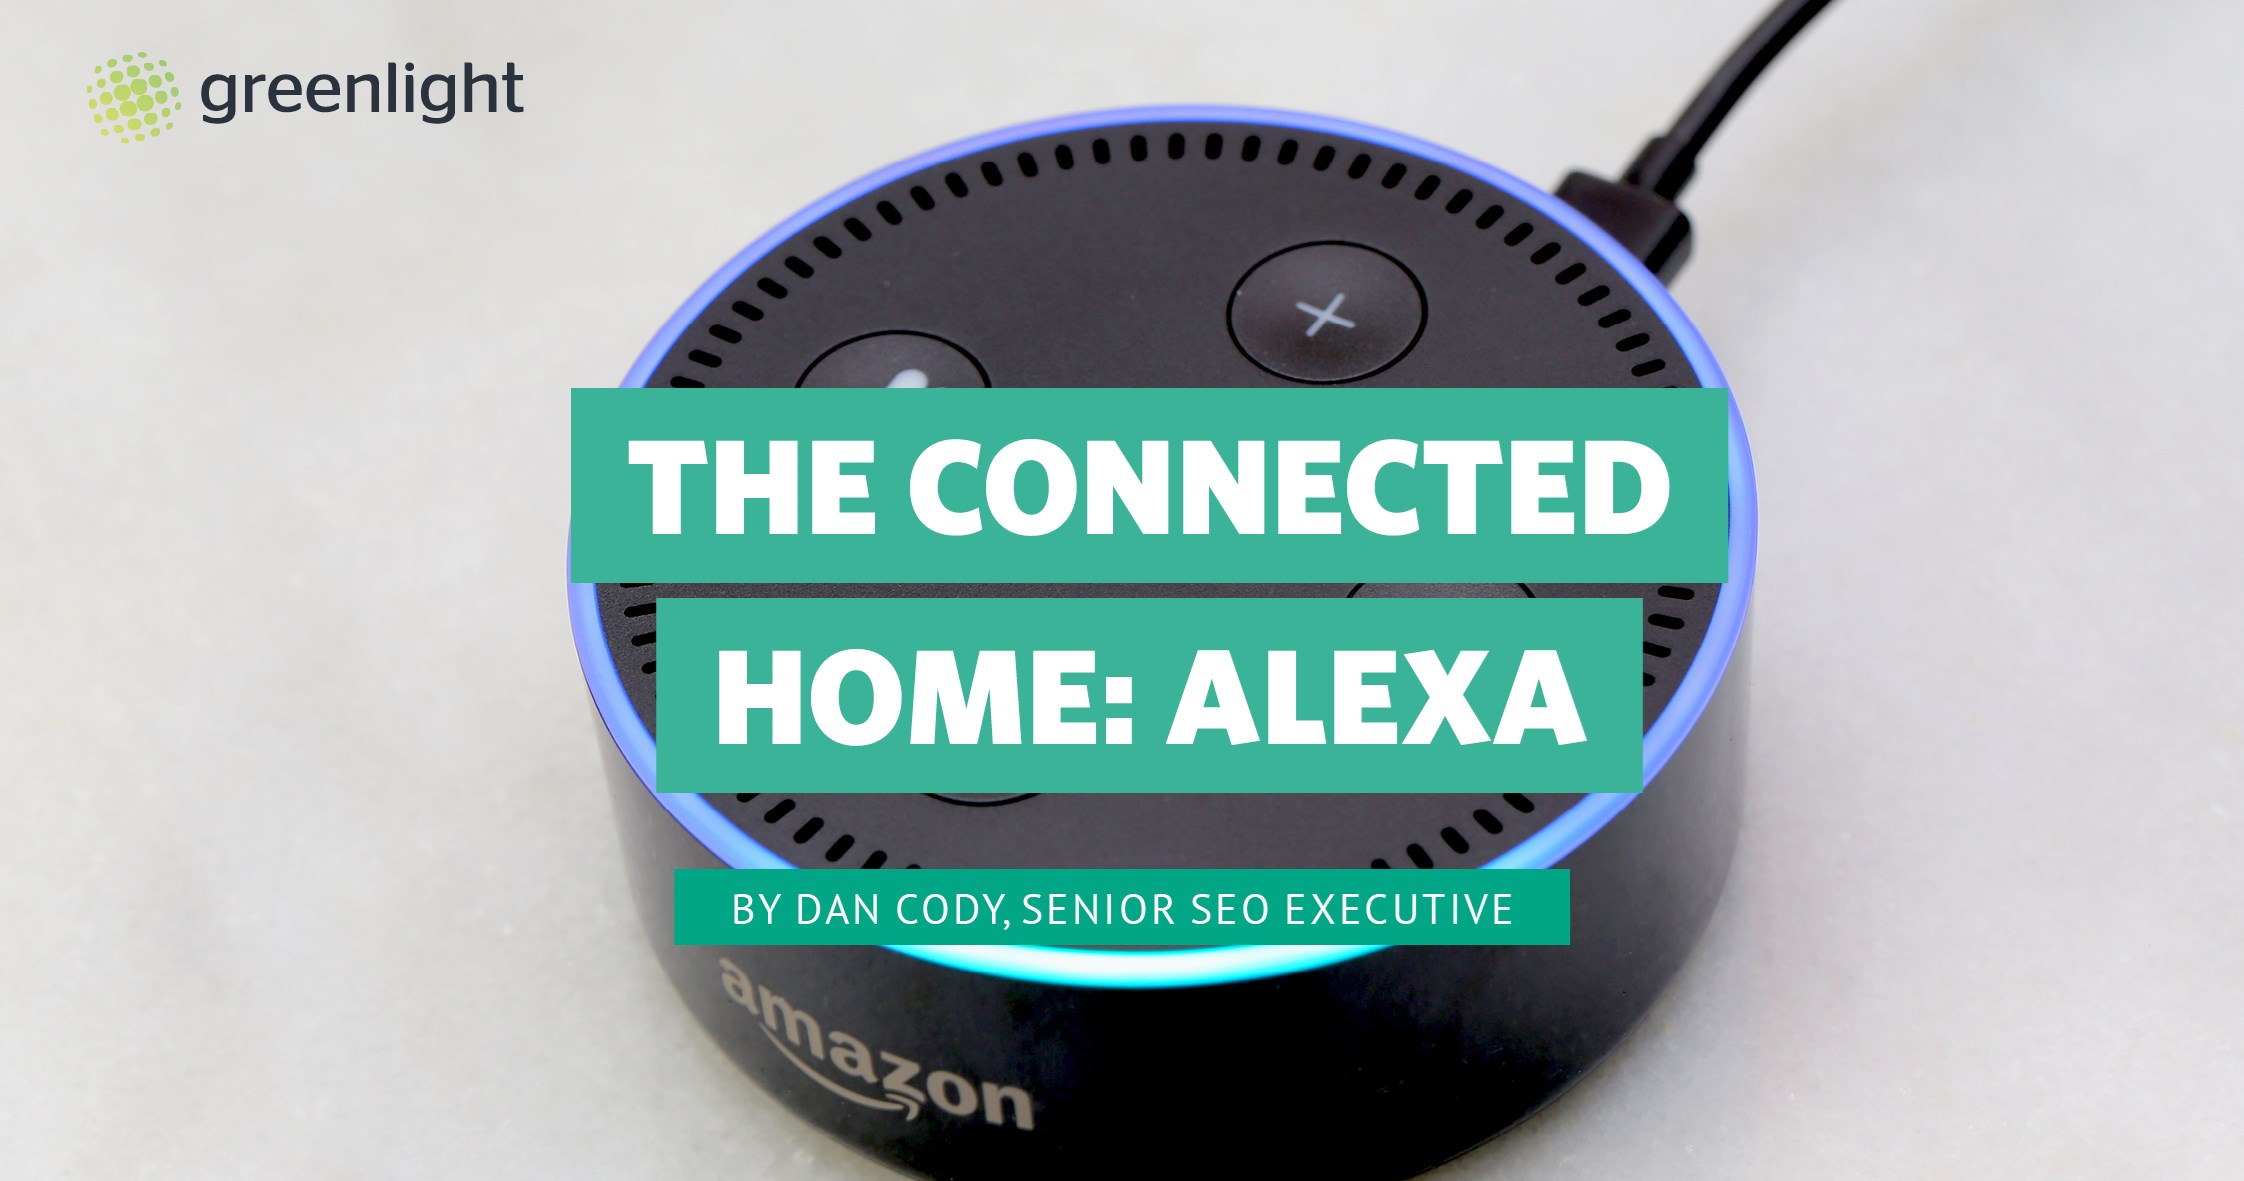 The Connected Home: Alexa